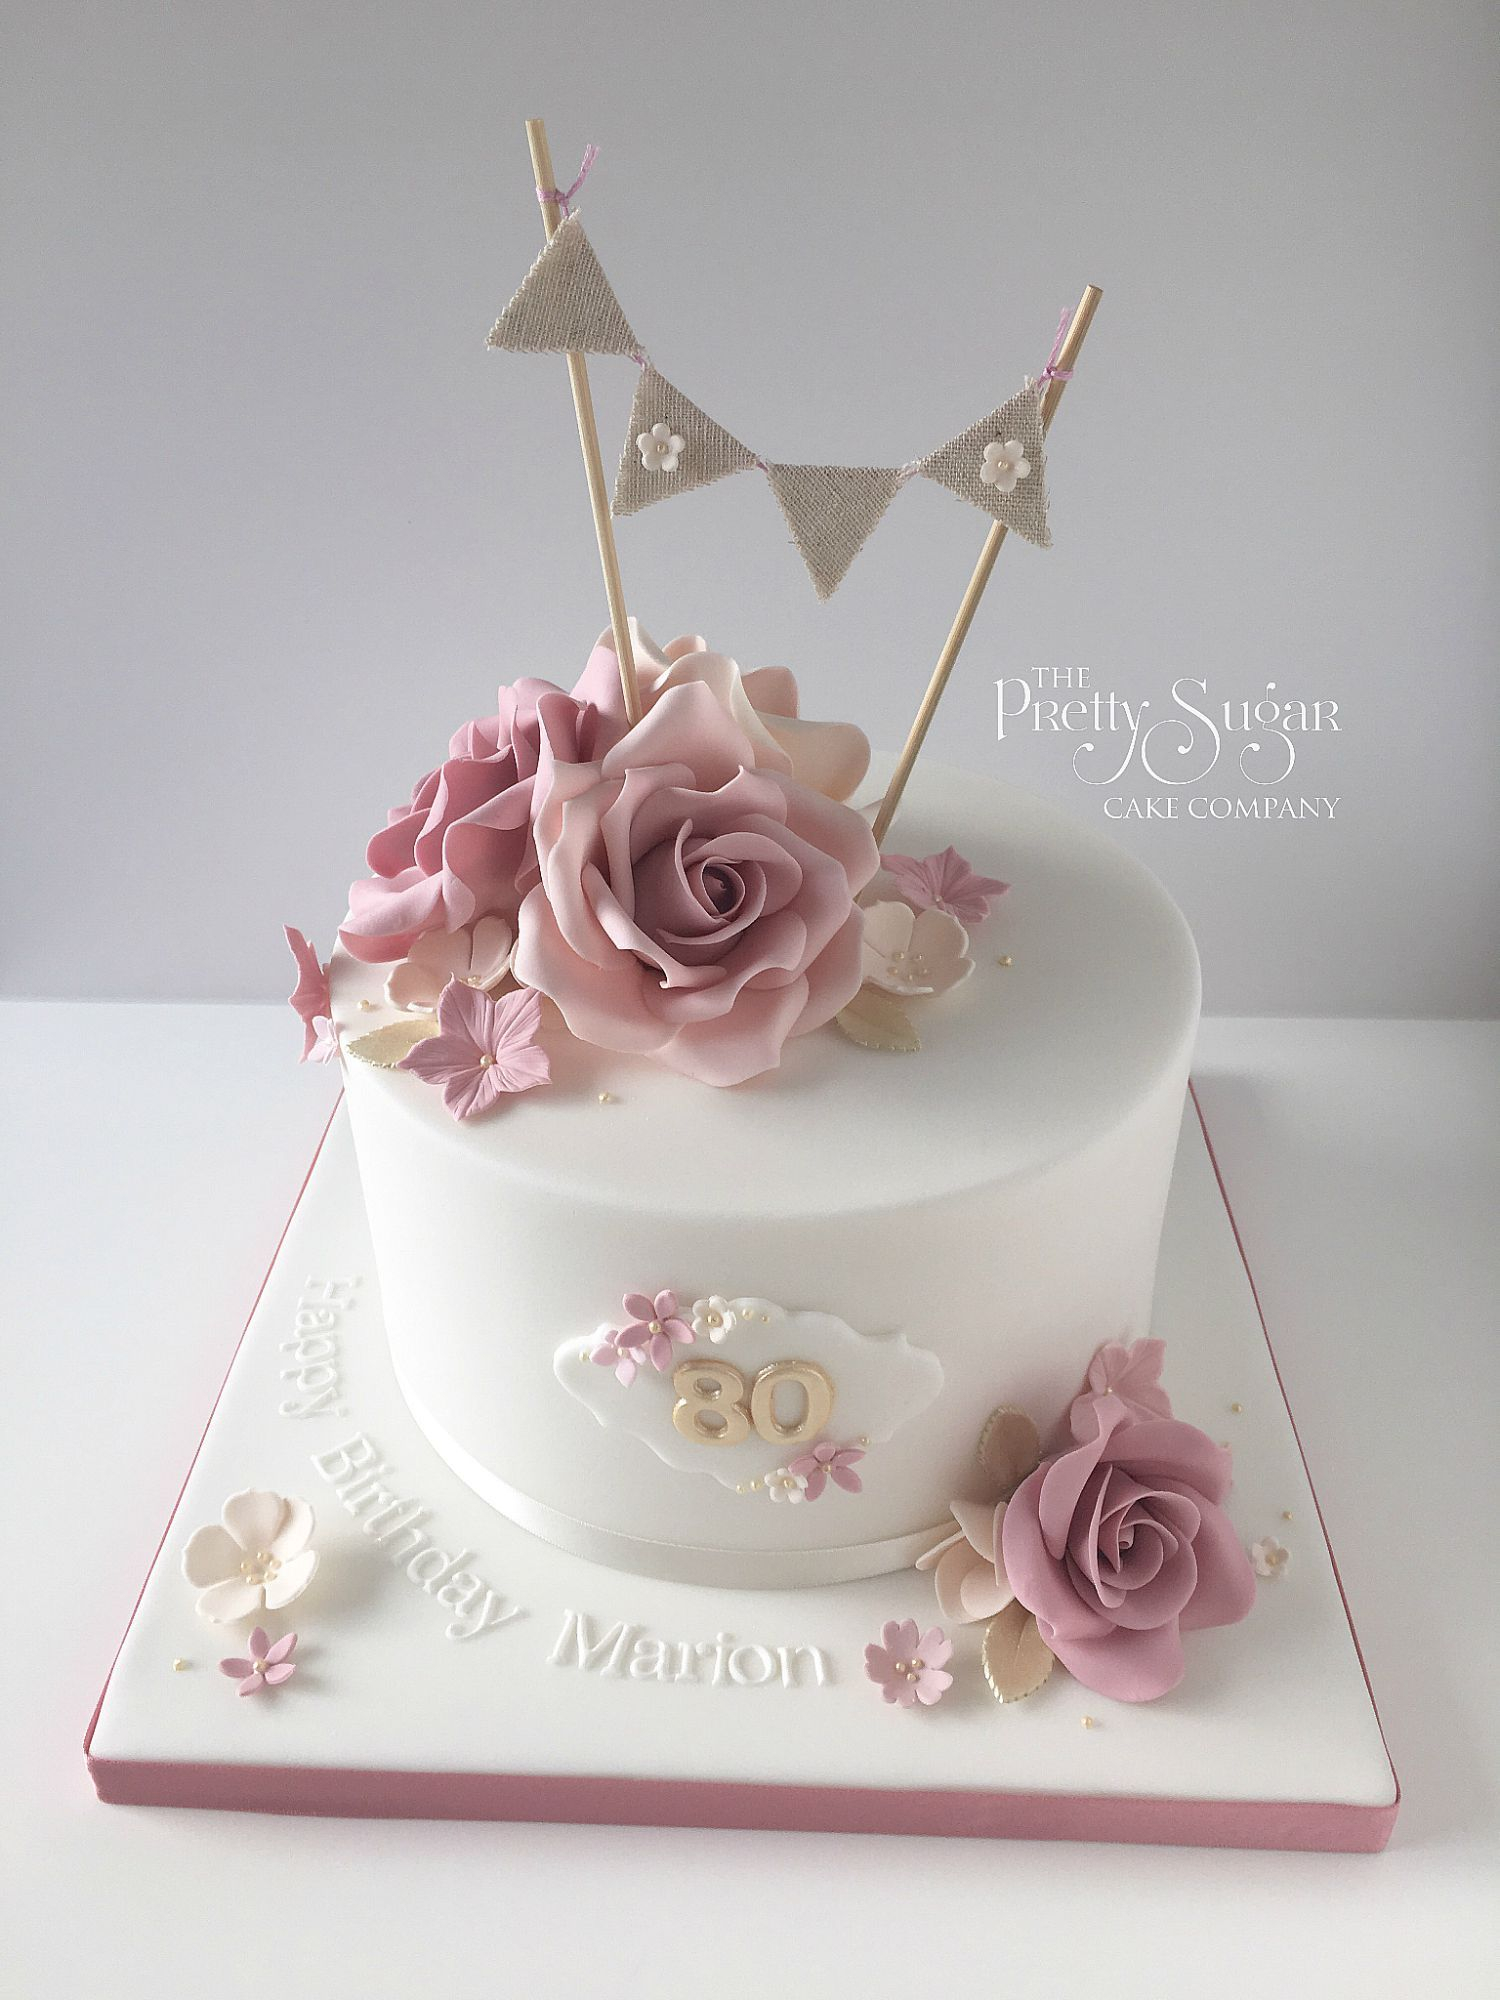 Vintage Birthday Cakes Vintage Style 80th Birthday Cake With Sugar Roses And Bunting Topper